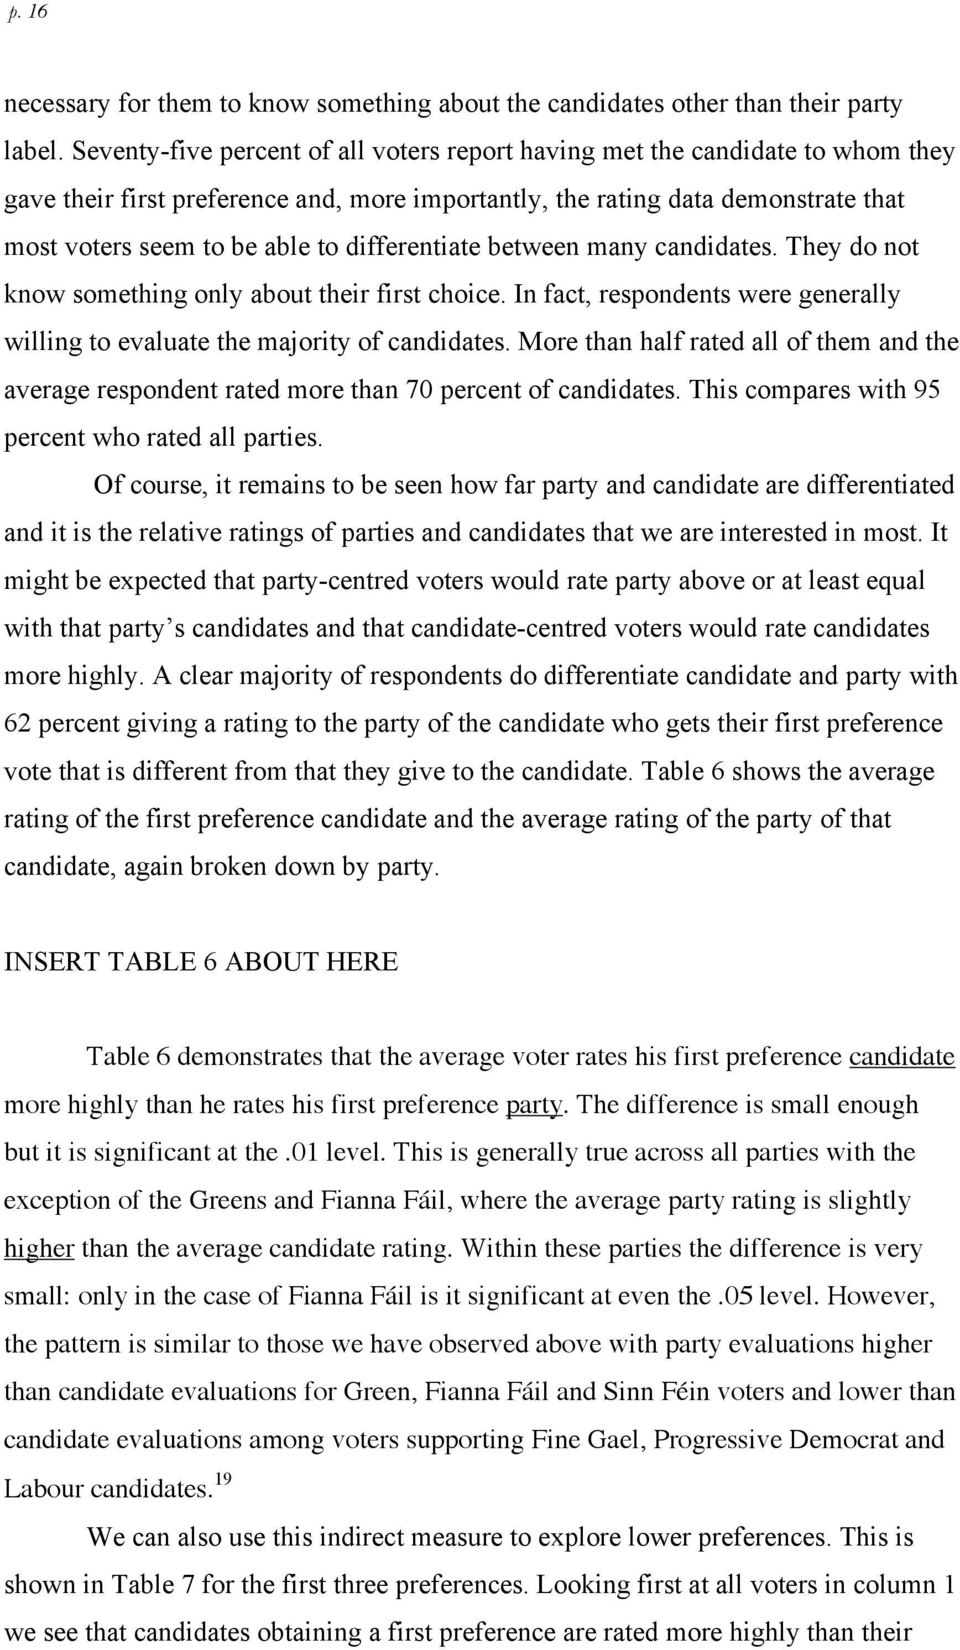 differentiate between many candidates. They do not know something only about their first choice. In fact, respondents were generally willing to evaluate the majority of candidates.